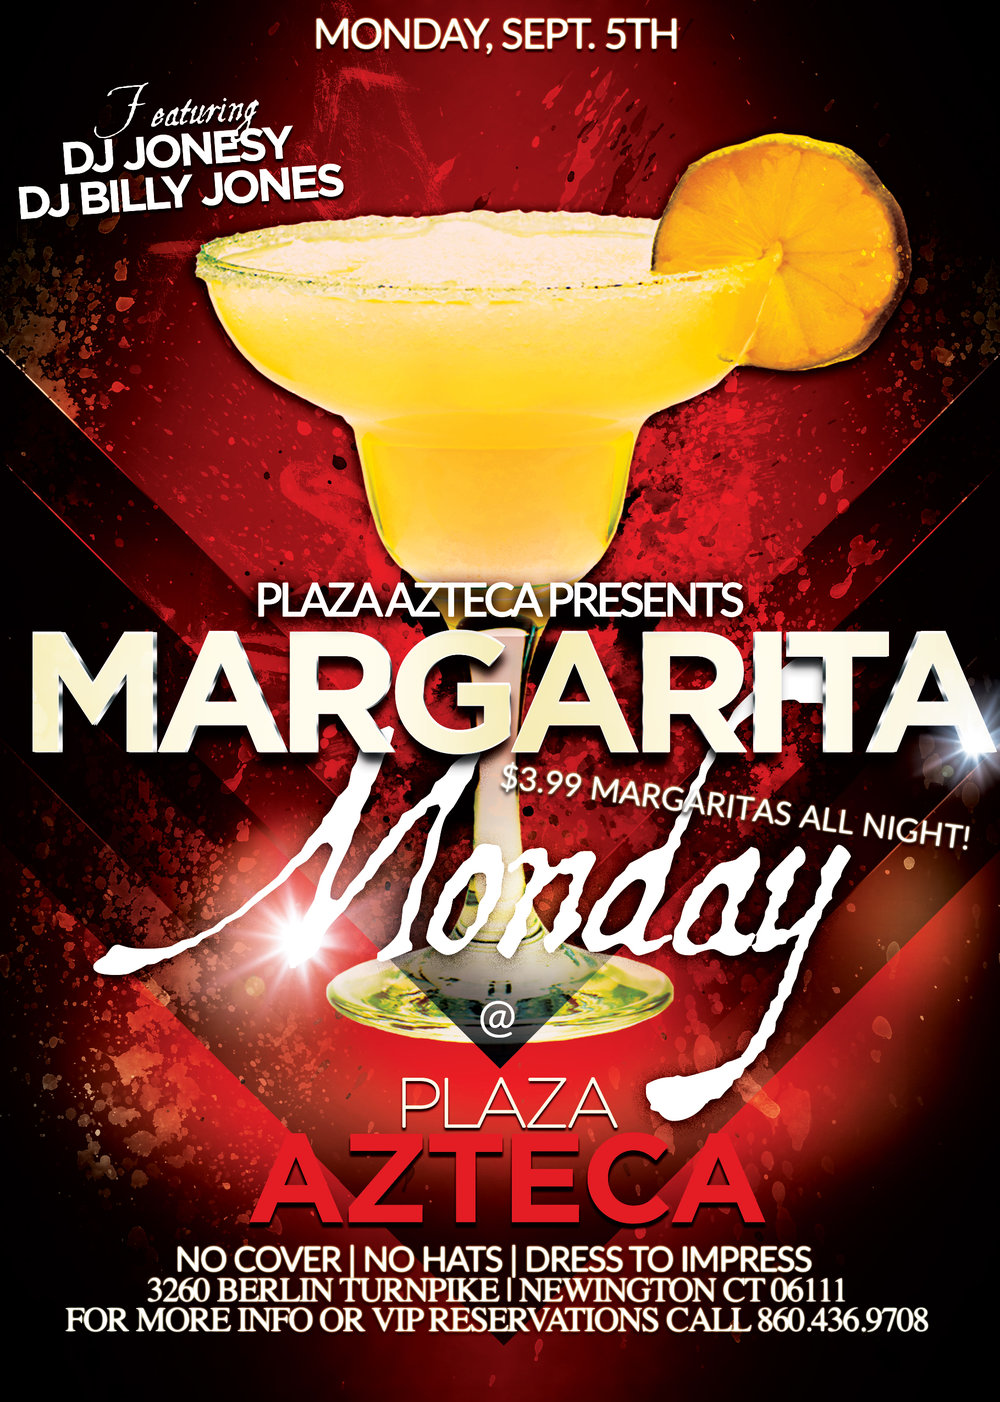 Monday, September 5th join me at Plaza Azteca in Newington, CT for Margarita Monday with music by Billy Jones & yours truly 9pm-close.  $3.99 Margaritas all night long!  Meet me there!